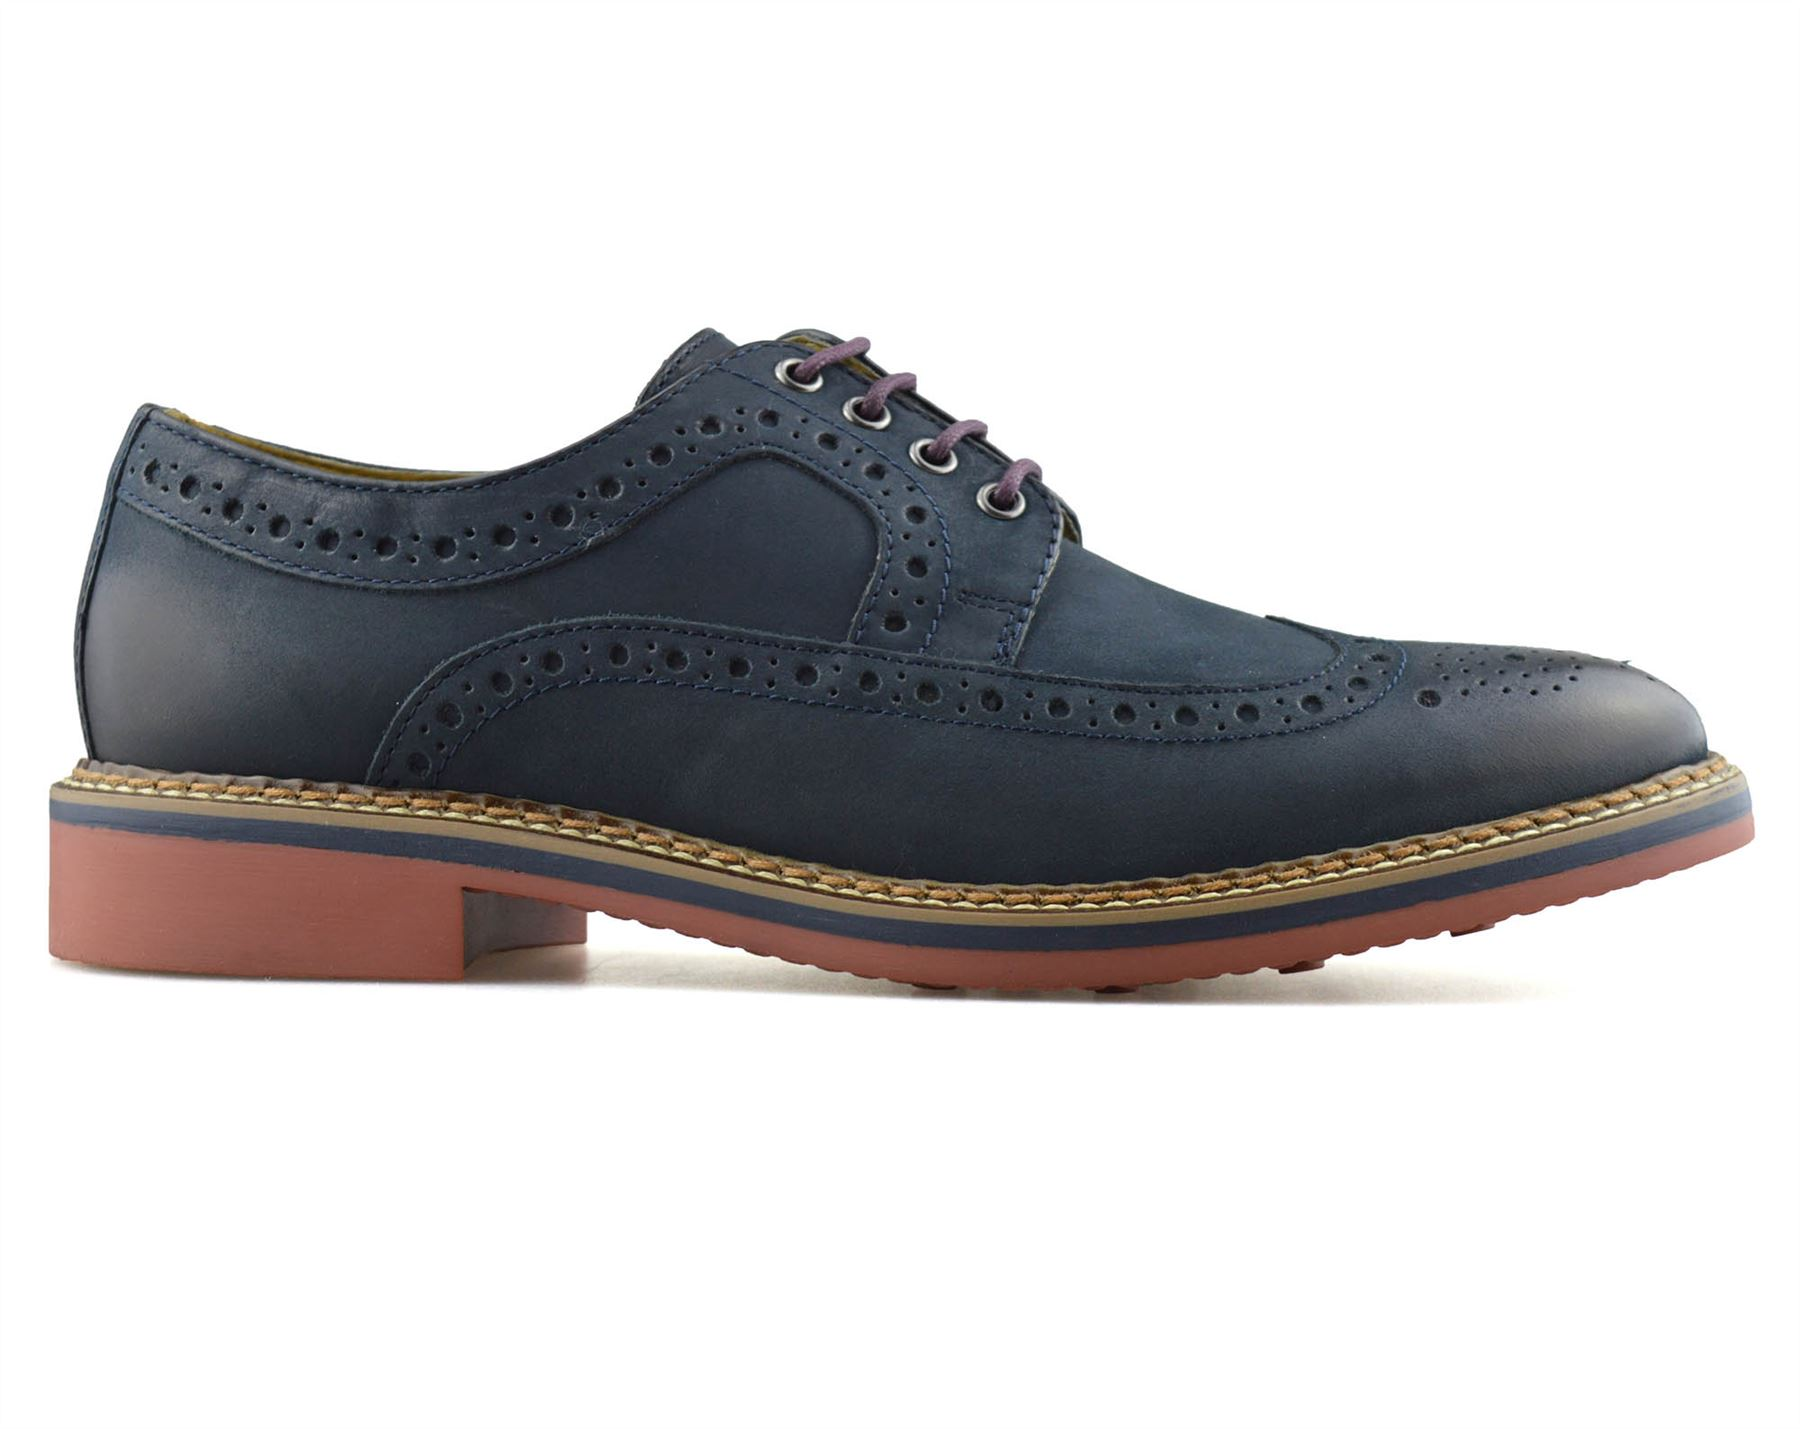 Mens-New-Ikon-Leather-Casual-Smart-Lace-Up-Oxford-Brogues-Work-Office-Shoes-Size thumbnail 20